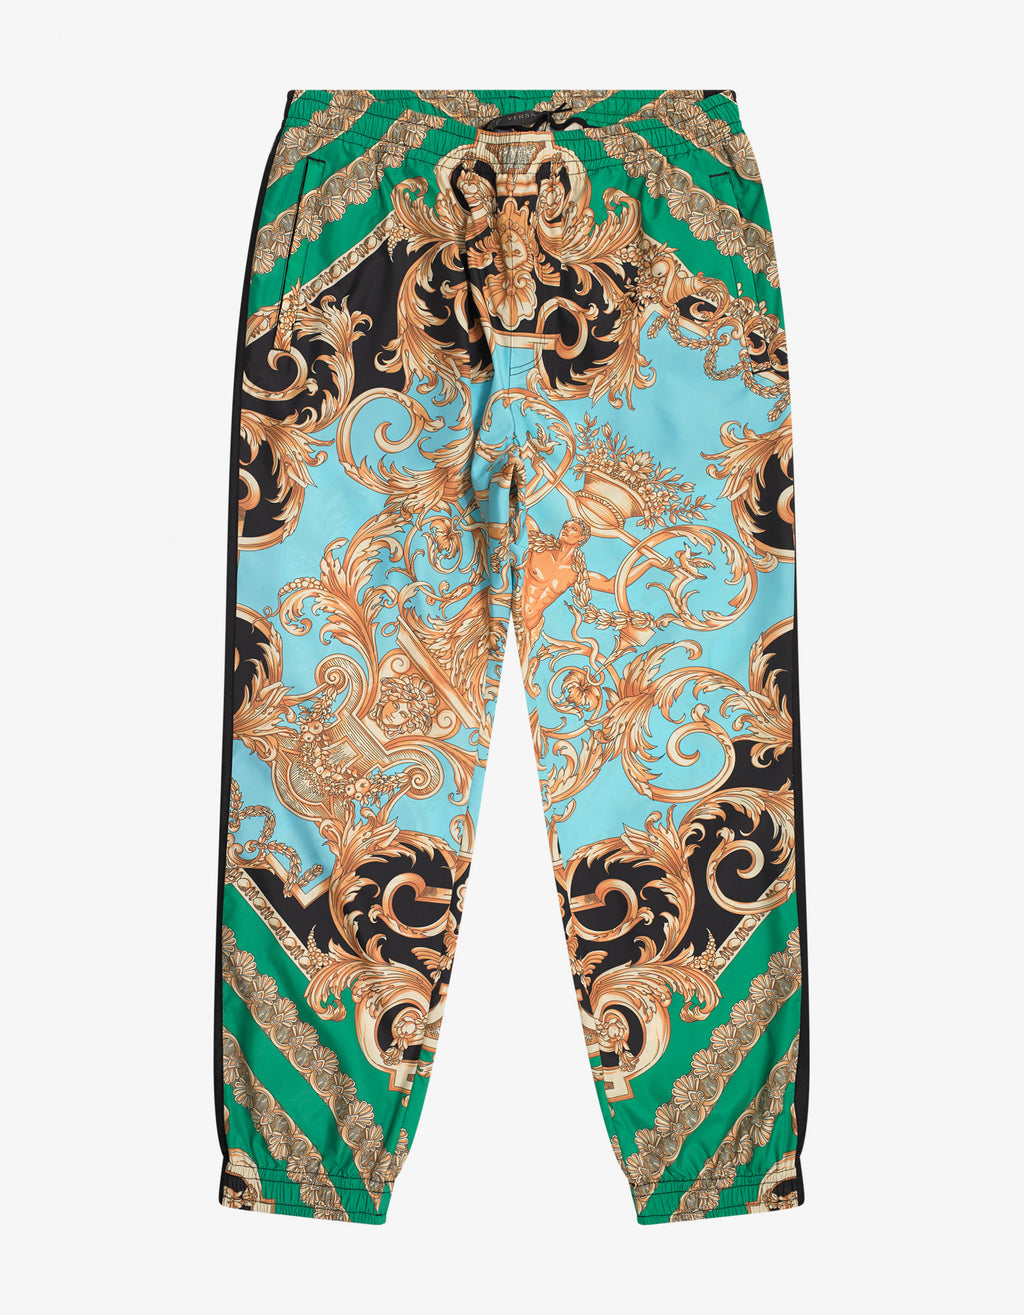 Barocco Homme Print Track Pants